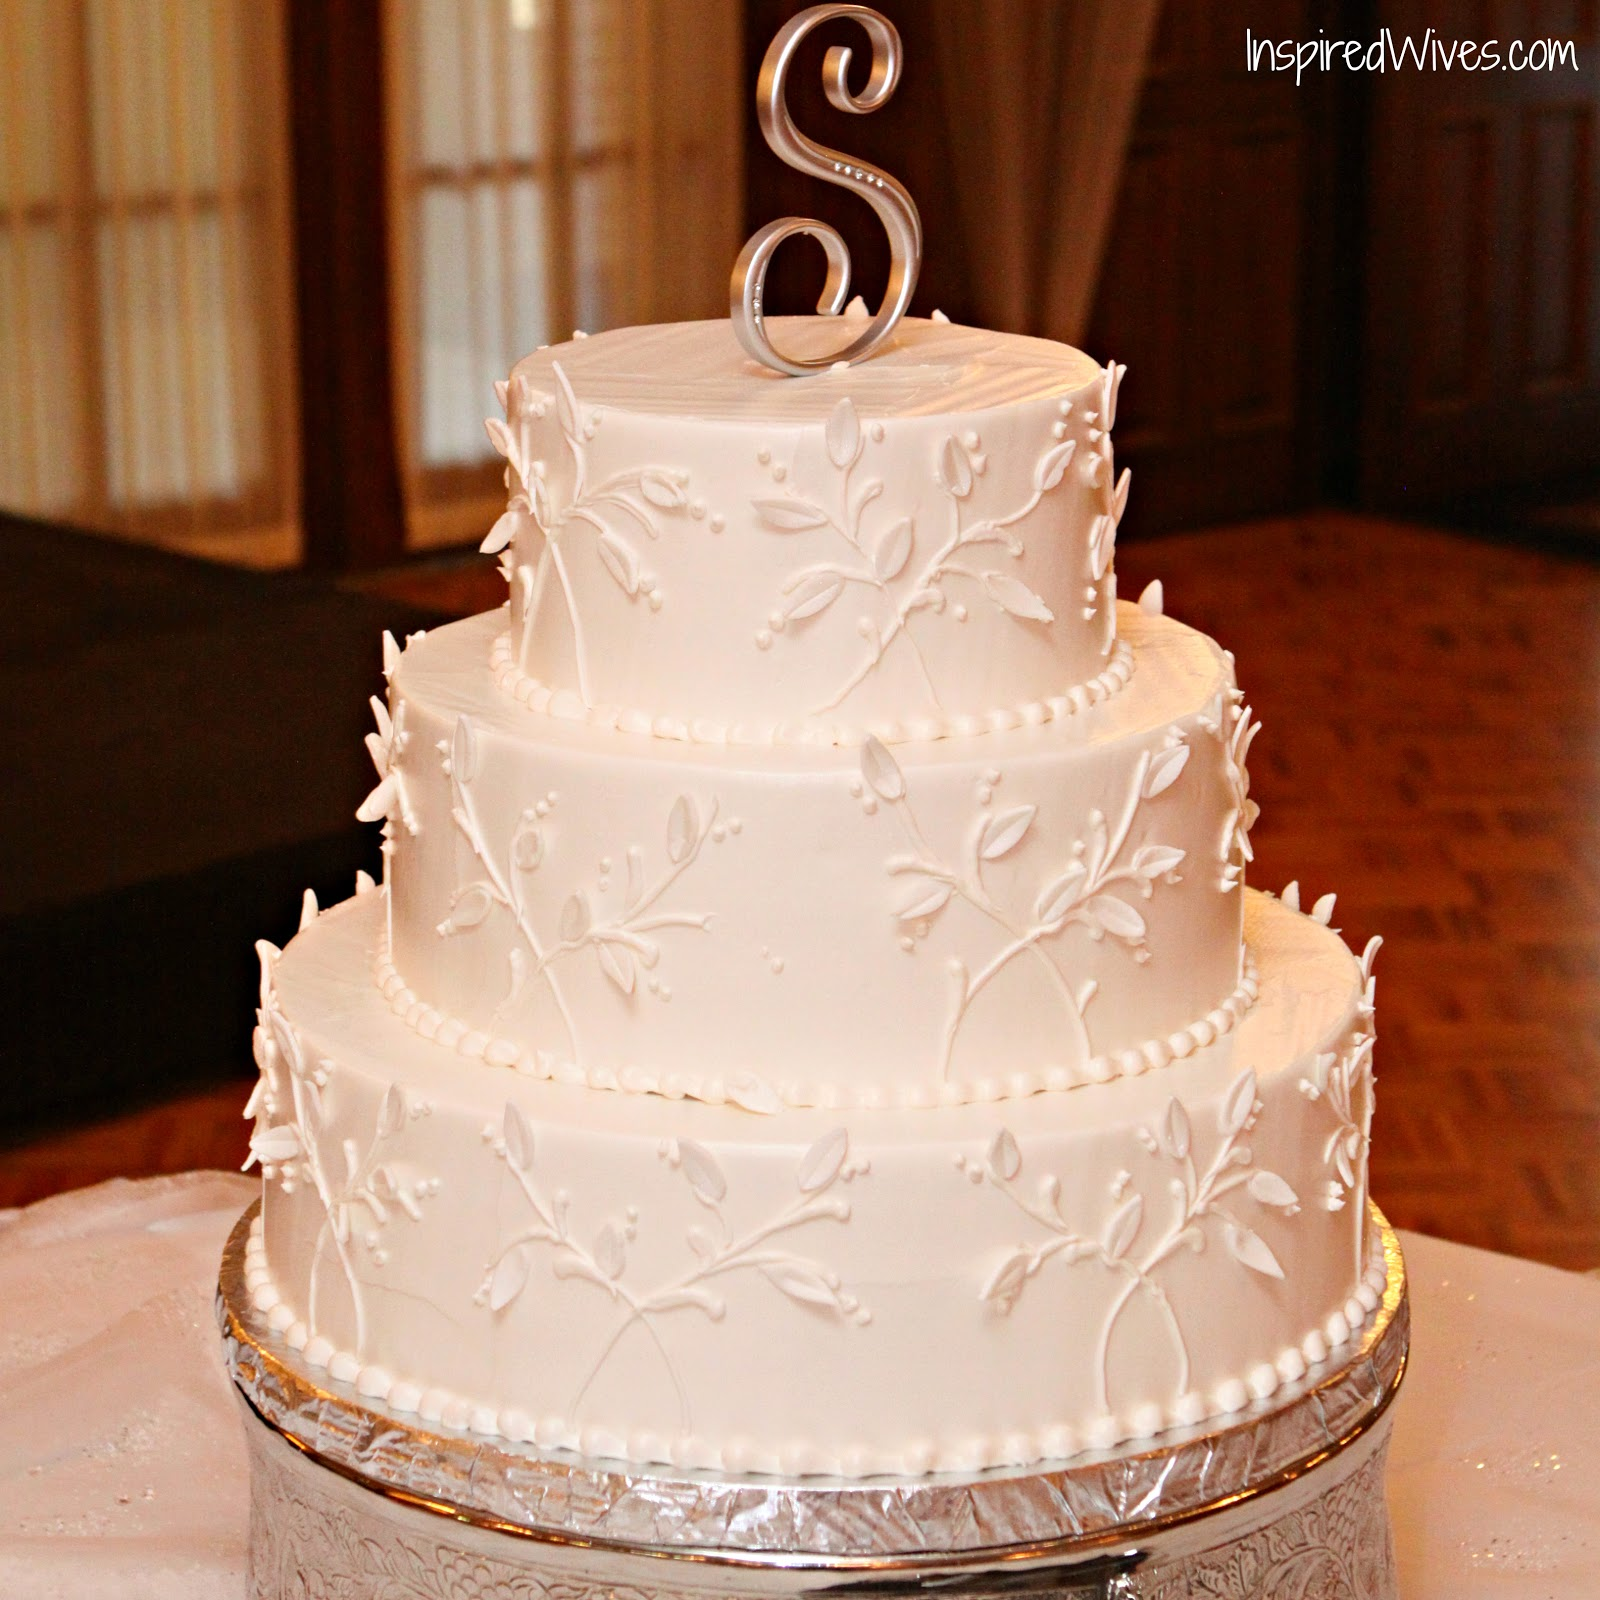 Inspired I Dos Design Your Perfect Wedding Cake - Create Your Wedding Cake